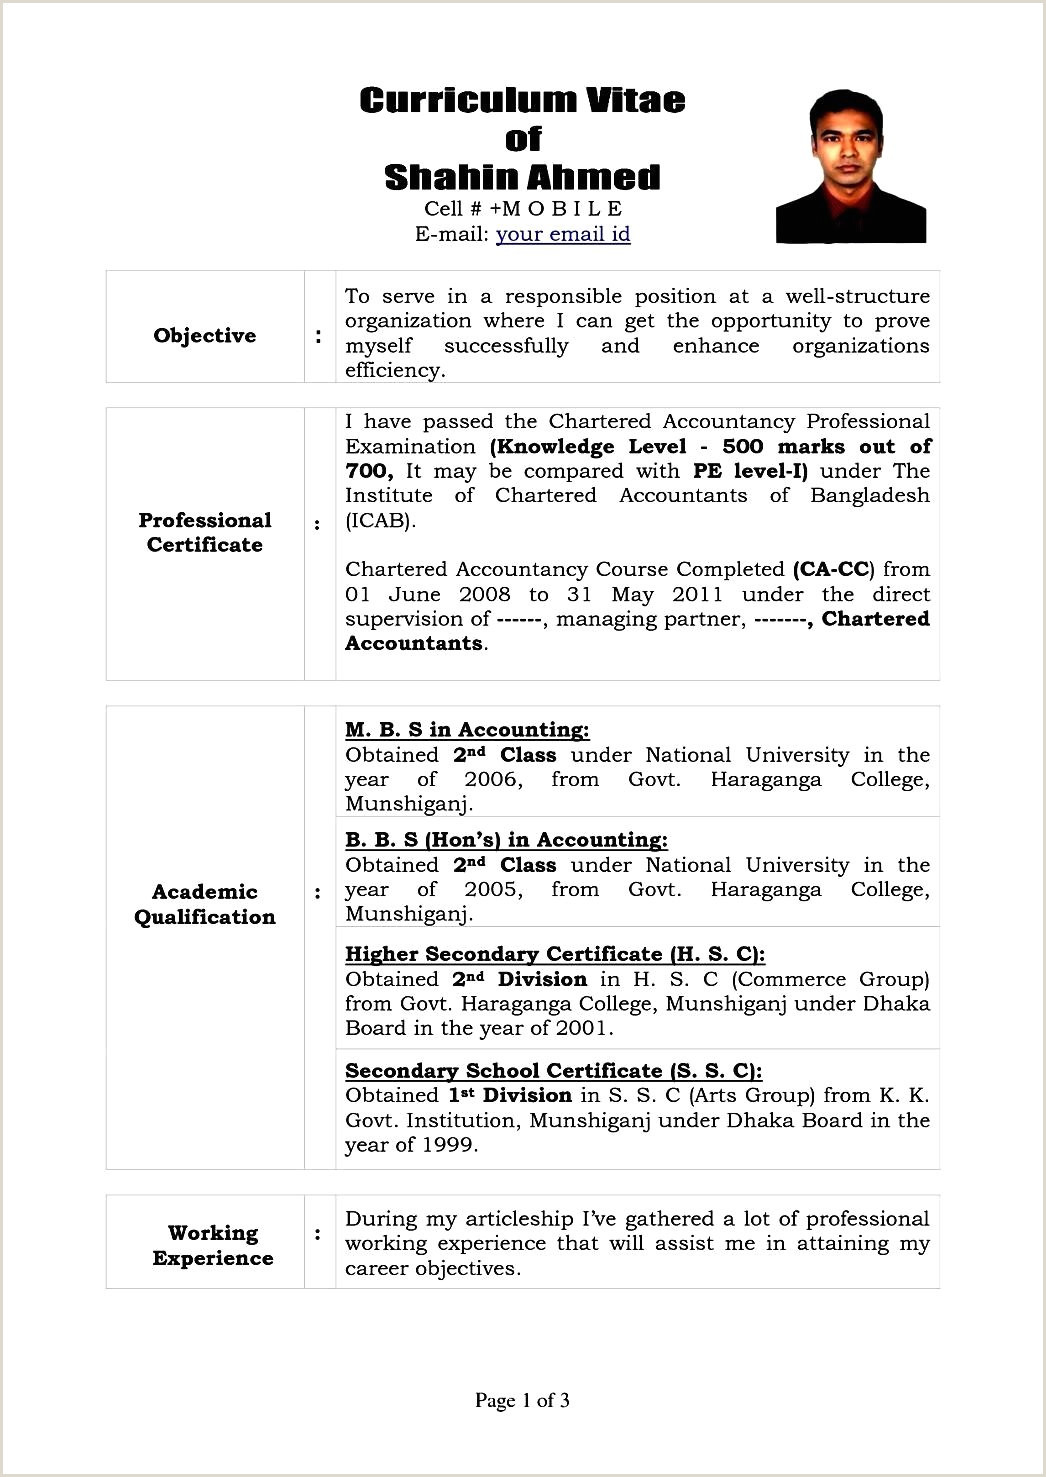 Cv format for Job In Bangladesh Pdf Resume Curriculum Vitae Template Best Clean Resume Cv